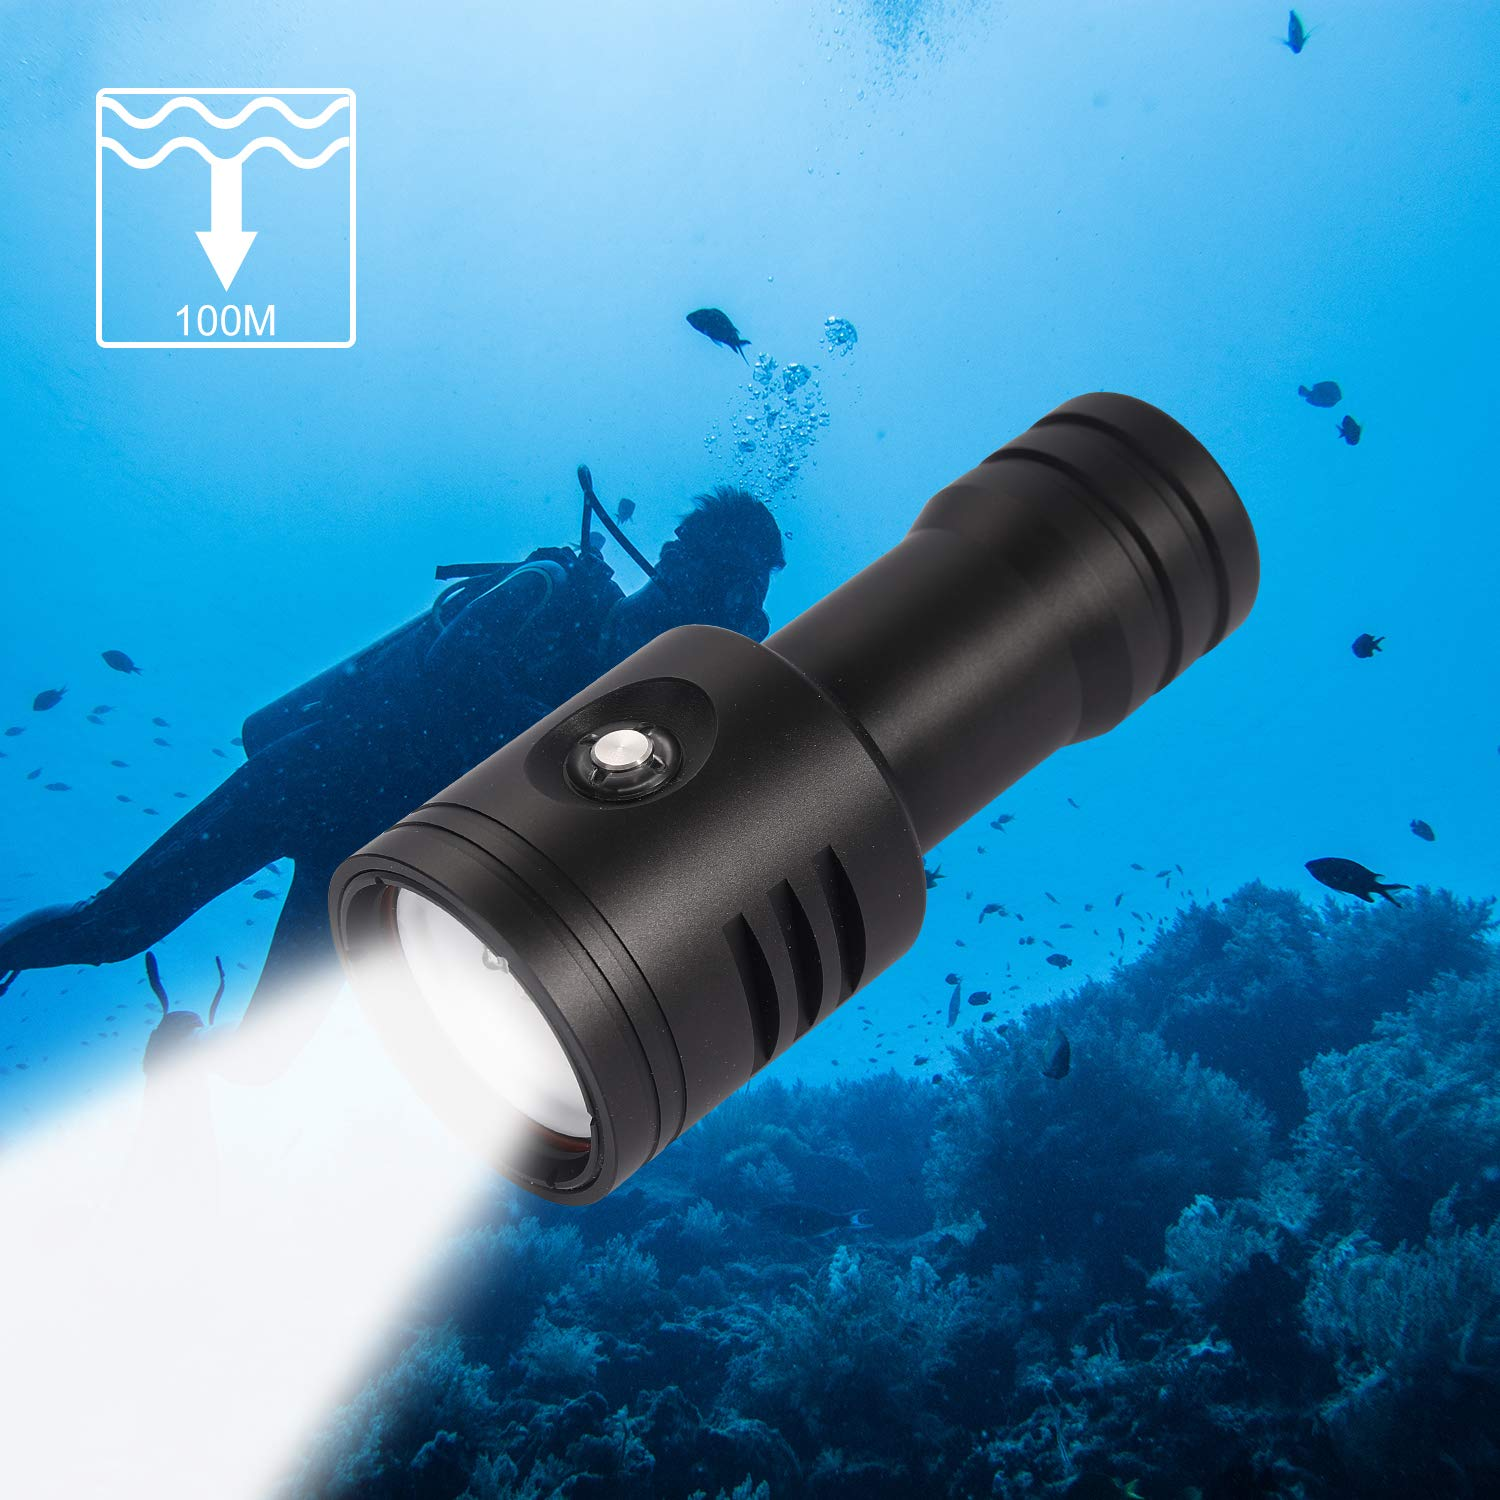 YCS Scuba Diving Photography Underwater Flashlight 4000 Lumens, Wide 120 Degrees Beam Angle with 26650/18650 Rechargeable Li-on Battery and Ball Joint(Battery Included) by YCS